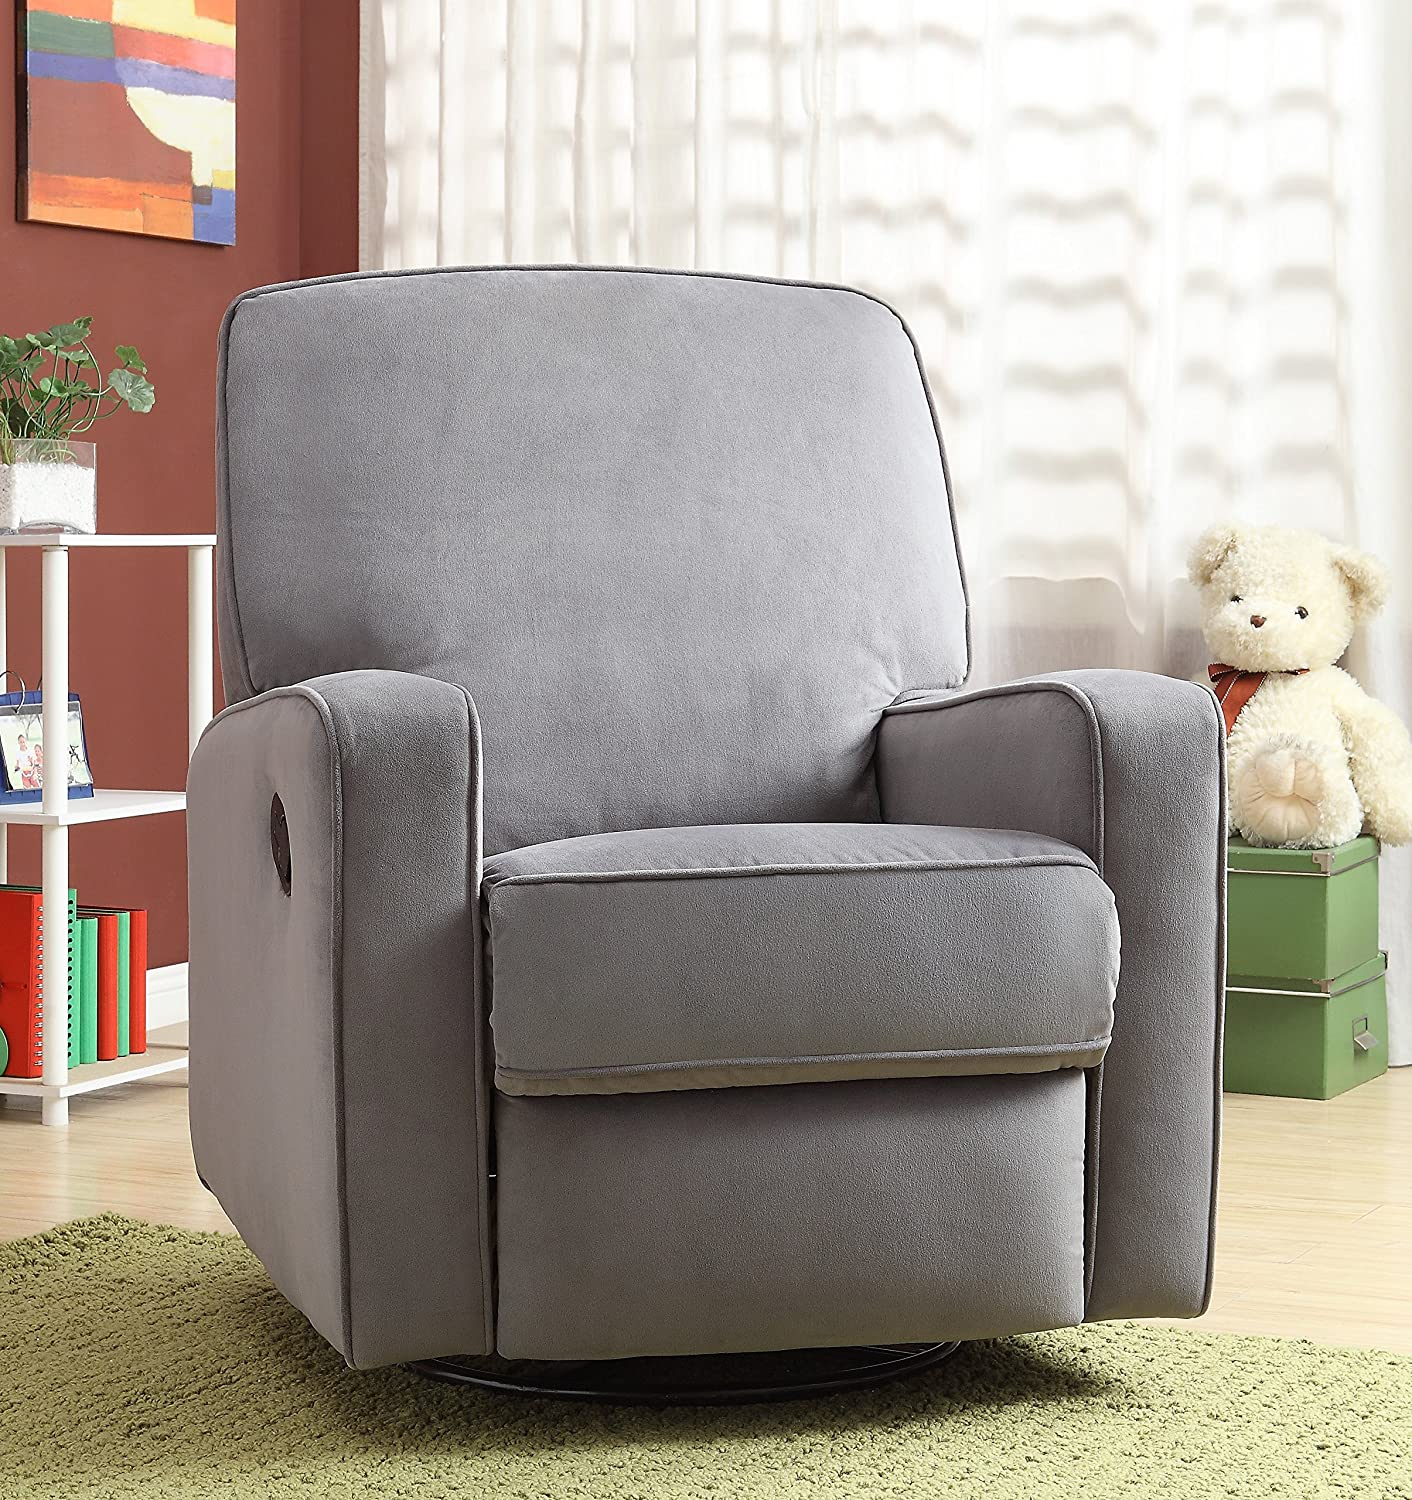 Glider recliner reviews - Comfortable recliner.com